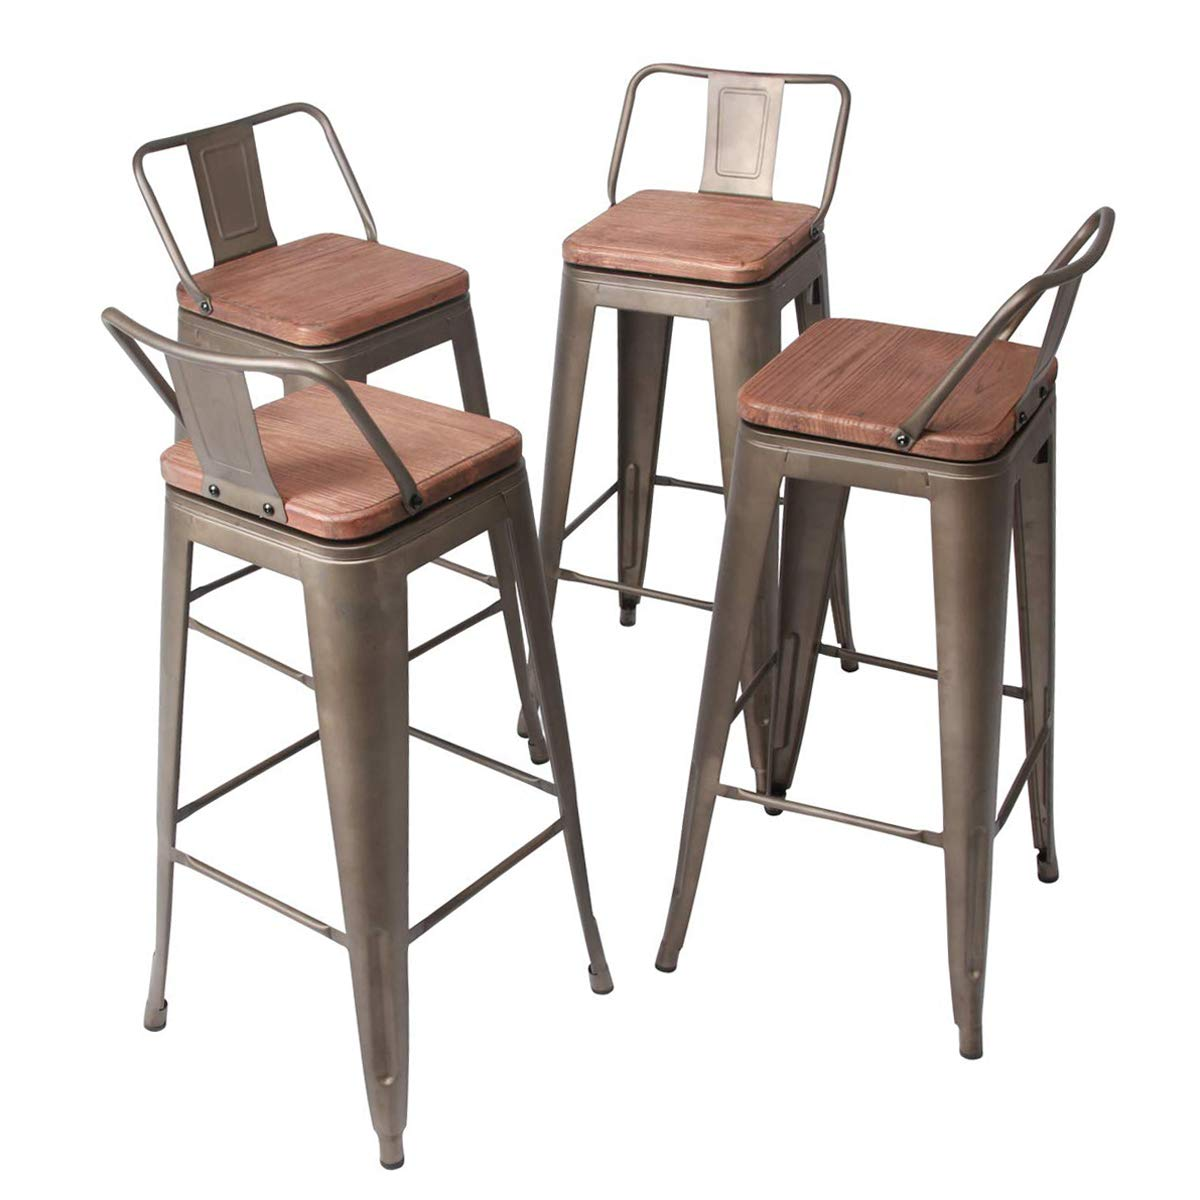 Tremendous Yongqiang Set Of 4 Swivel Bar Stools 30 Inch Metal Barstools Indoor Outdoor Kitchen Counter Stool Dining Chair Stool Rusty Wooden Seat Gmtry Best Dining Table And Chair Ideas Images Gmtryco